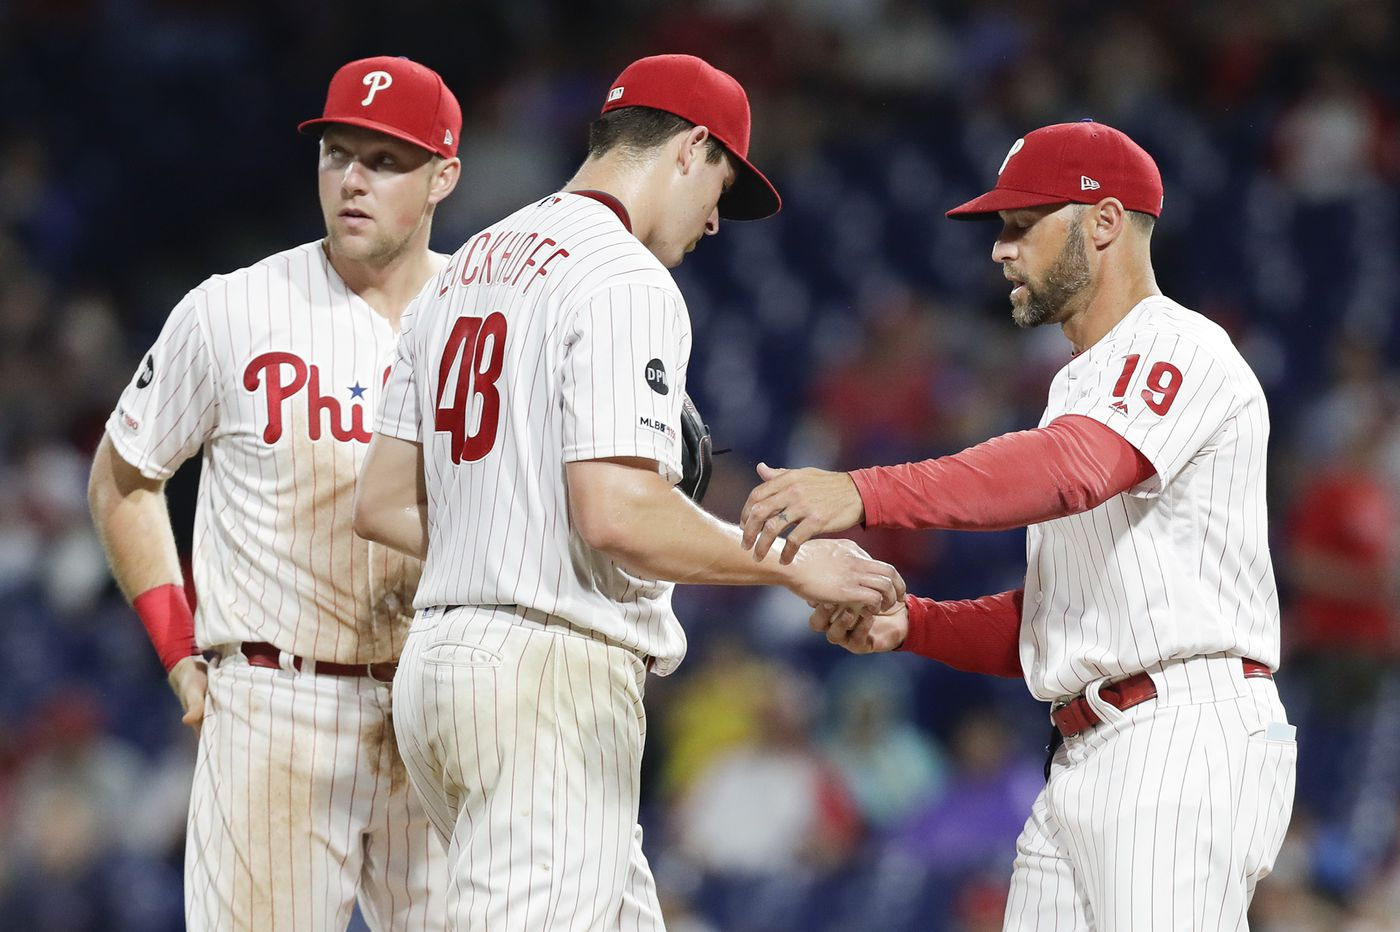 The Phillies don't have many options when it comes to fixing their starting rotation | David Murphy